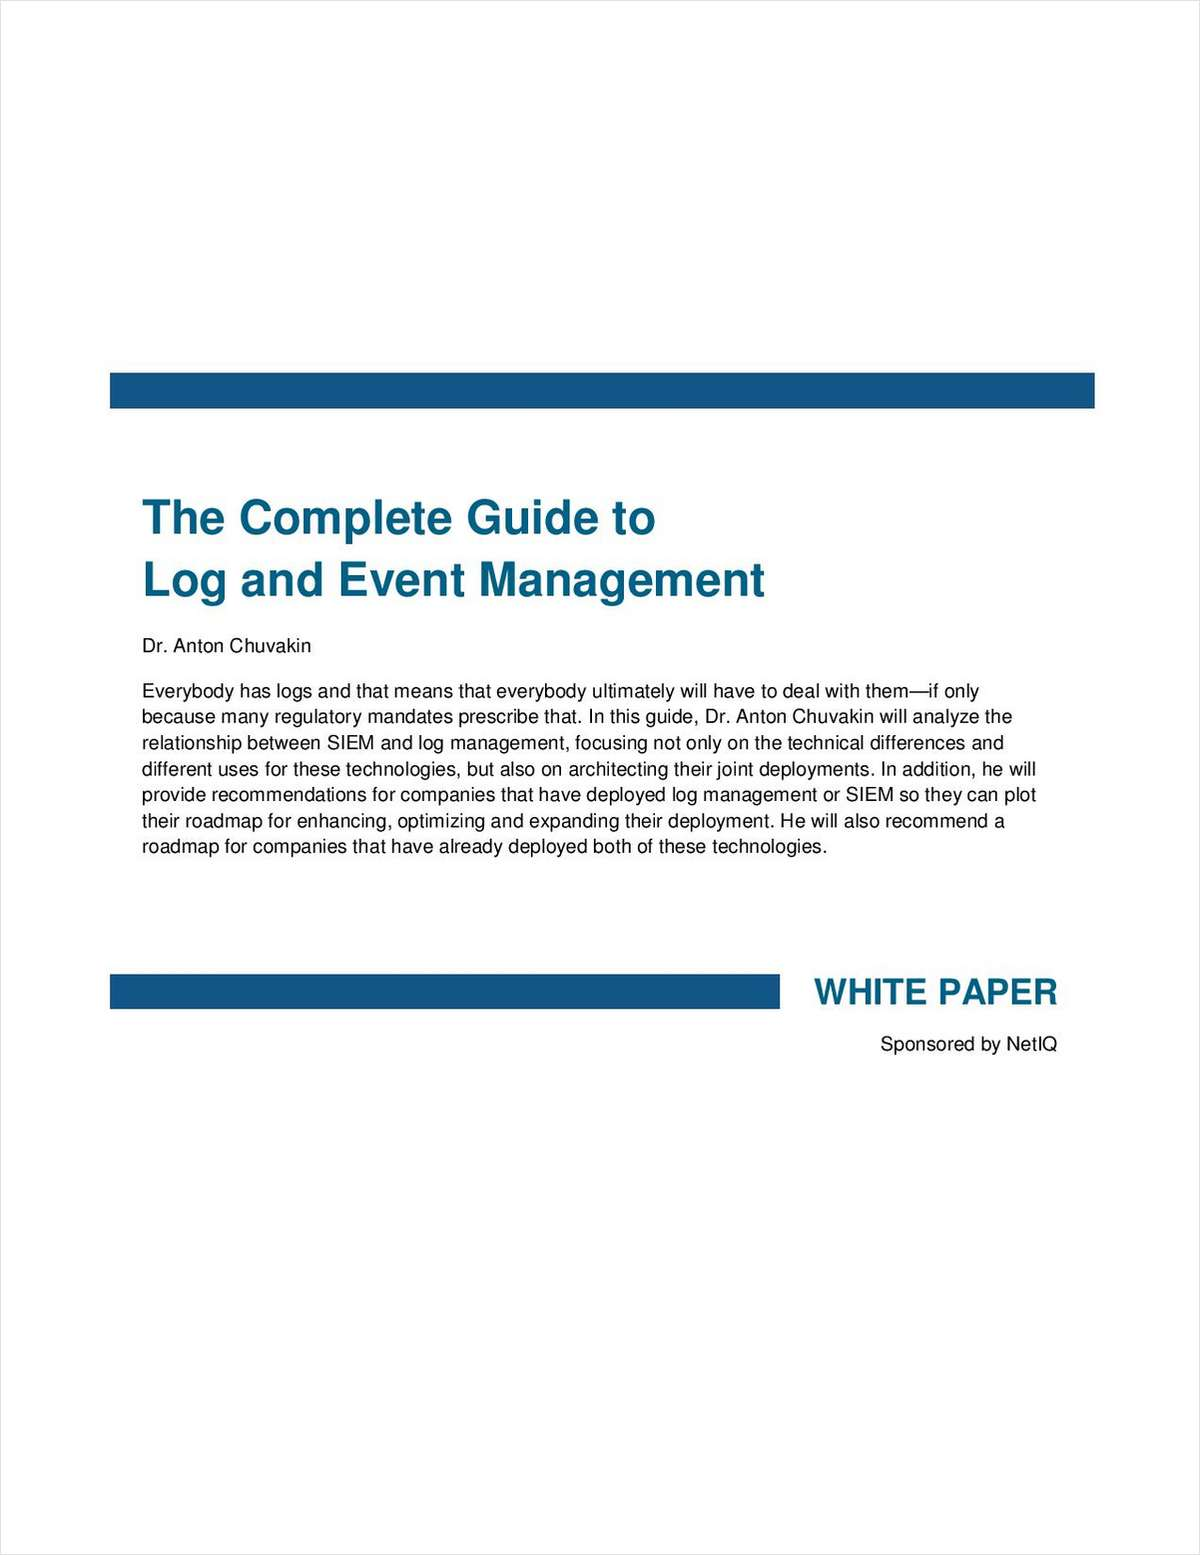 The Complete Guide to Log and Event Management